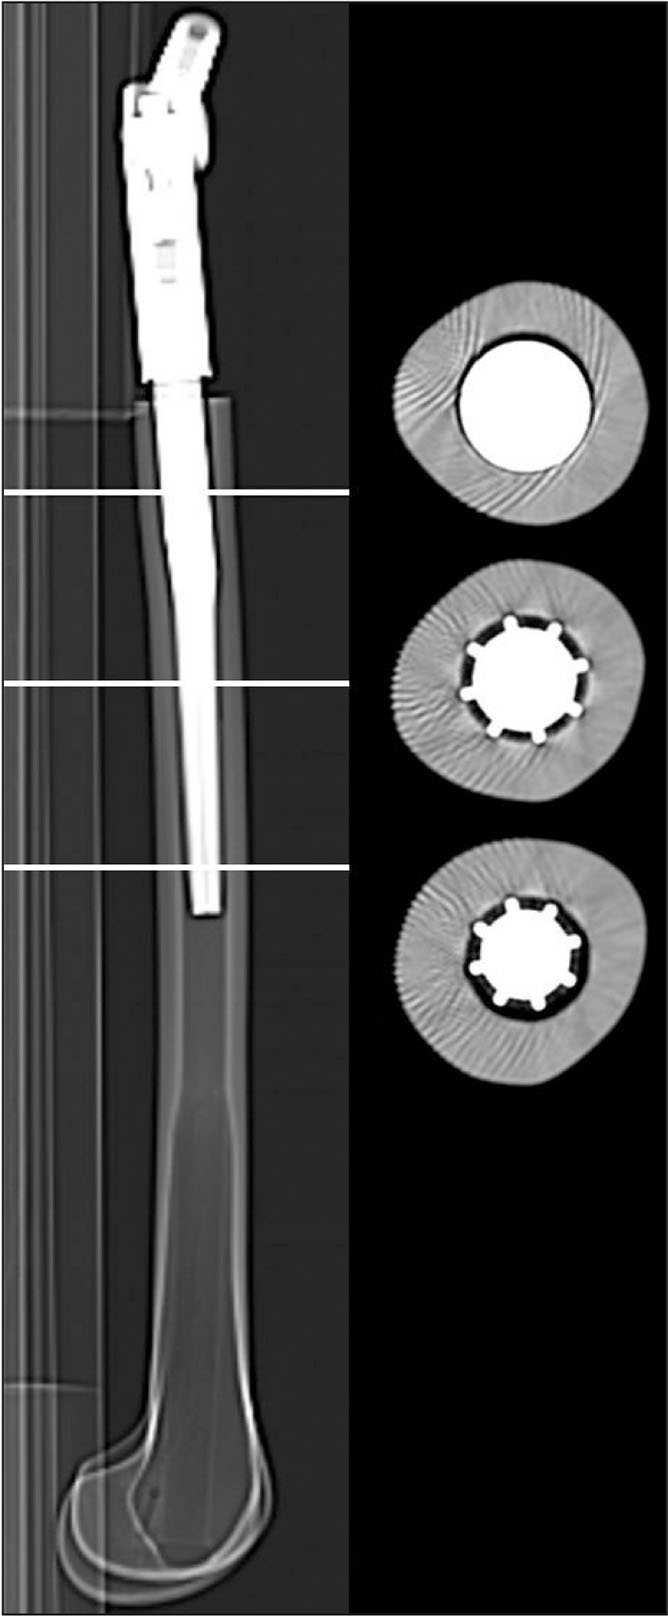 Computed tomography scan for analysis of the metal–bone interface (left) with cross-section references of the proximal, shaft, and distal parts of the stem (right).